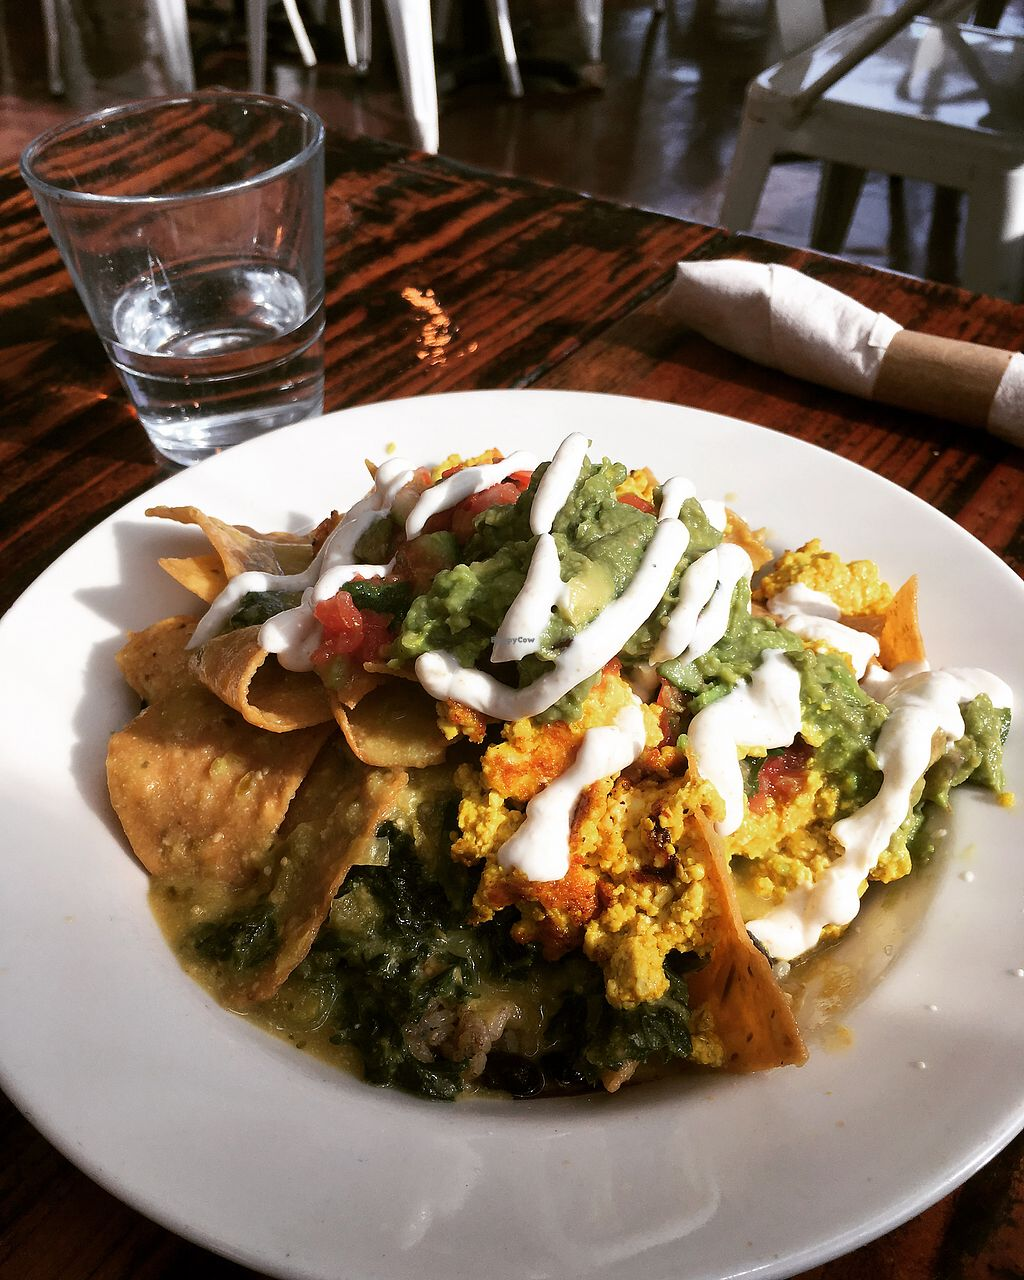 """Photo of Sage Vegan Bistro and KindKreme  by <a href=""""/members/profile/kurtanderson"""">kurtanderson</a> <br/>Vegan Chilaquiles <br/> September 5, 2017  - <a href='/contact/abuse/image/26073/301212'>Report</a>"""